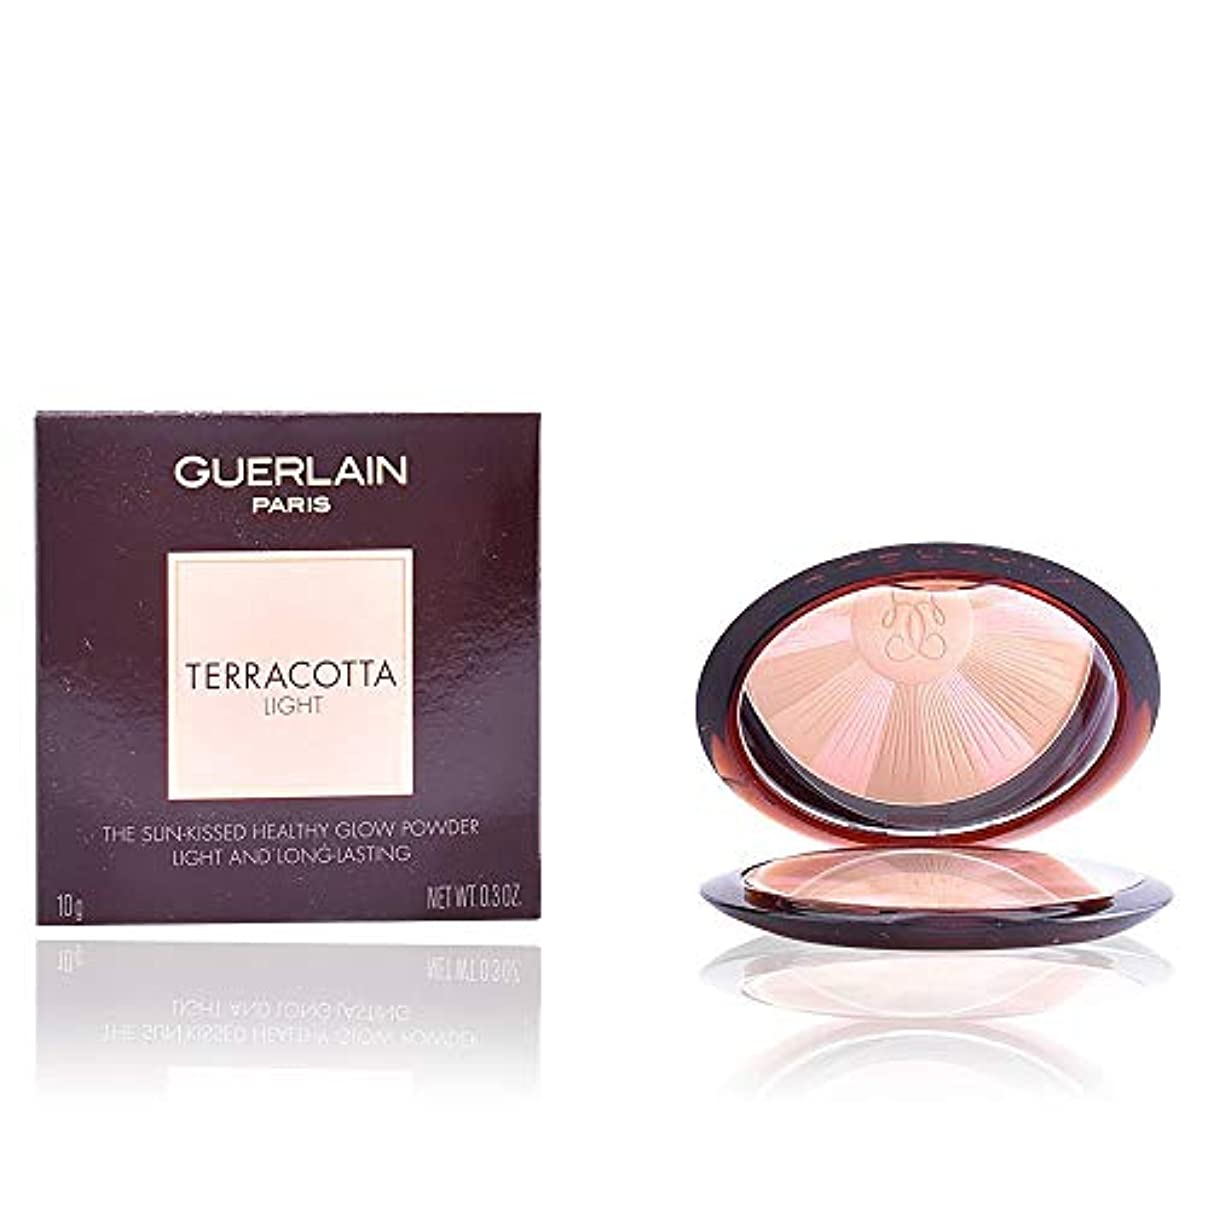 大事にする知恵すでにゲラン Terracotta Light The Sun Kissed Healthy Glow Powder - # 01 Light Warm 10g/0.3oz並行輸入品